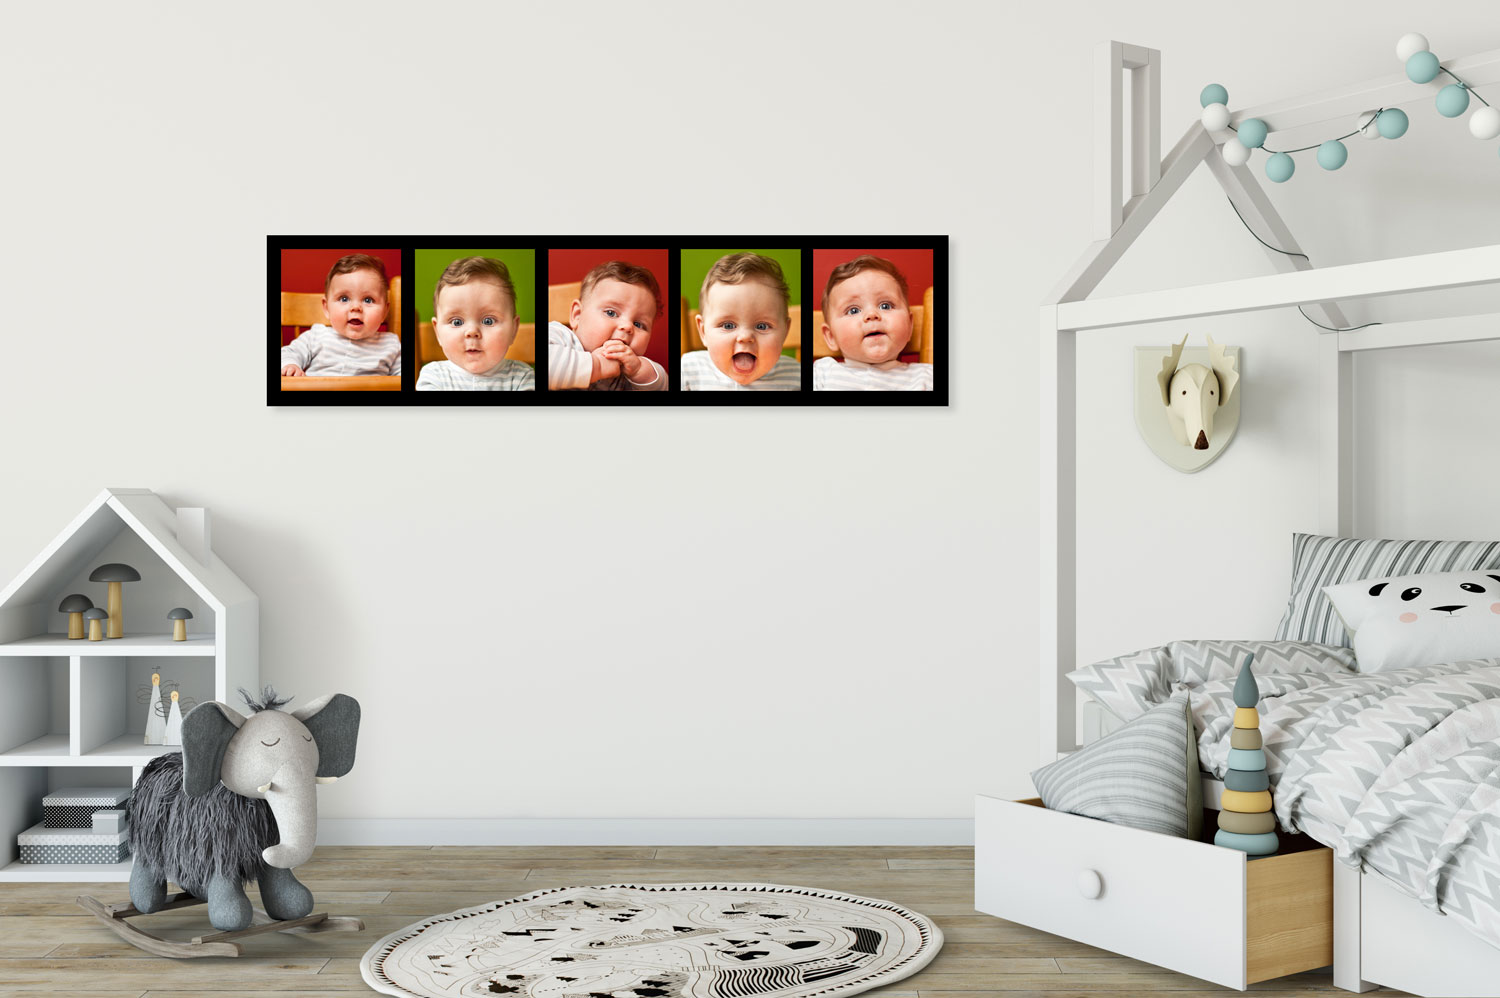 - Kids rooms and nursery's are great places for Wall Art. Our modern acrylic pieces in particular are popular with teens.